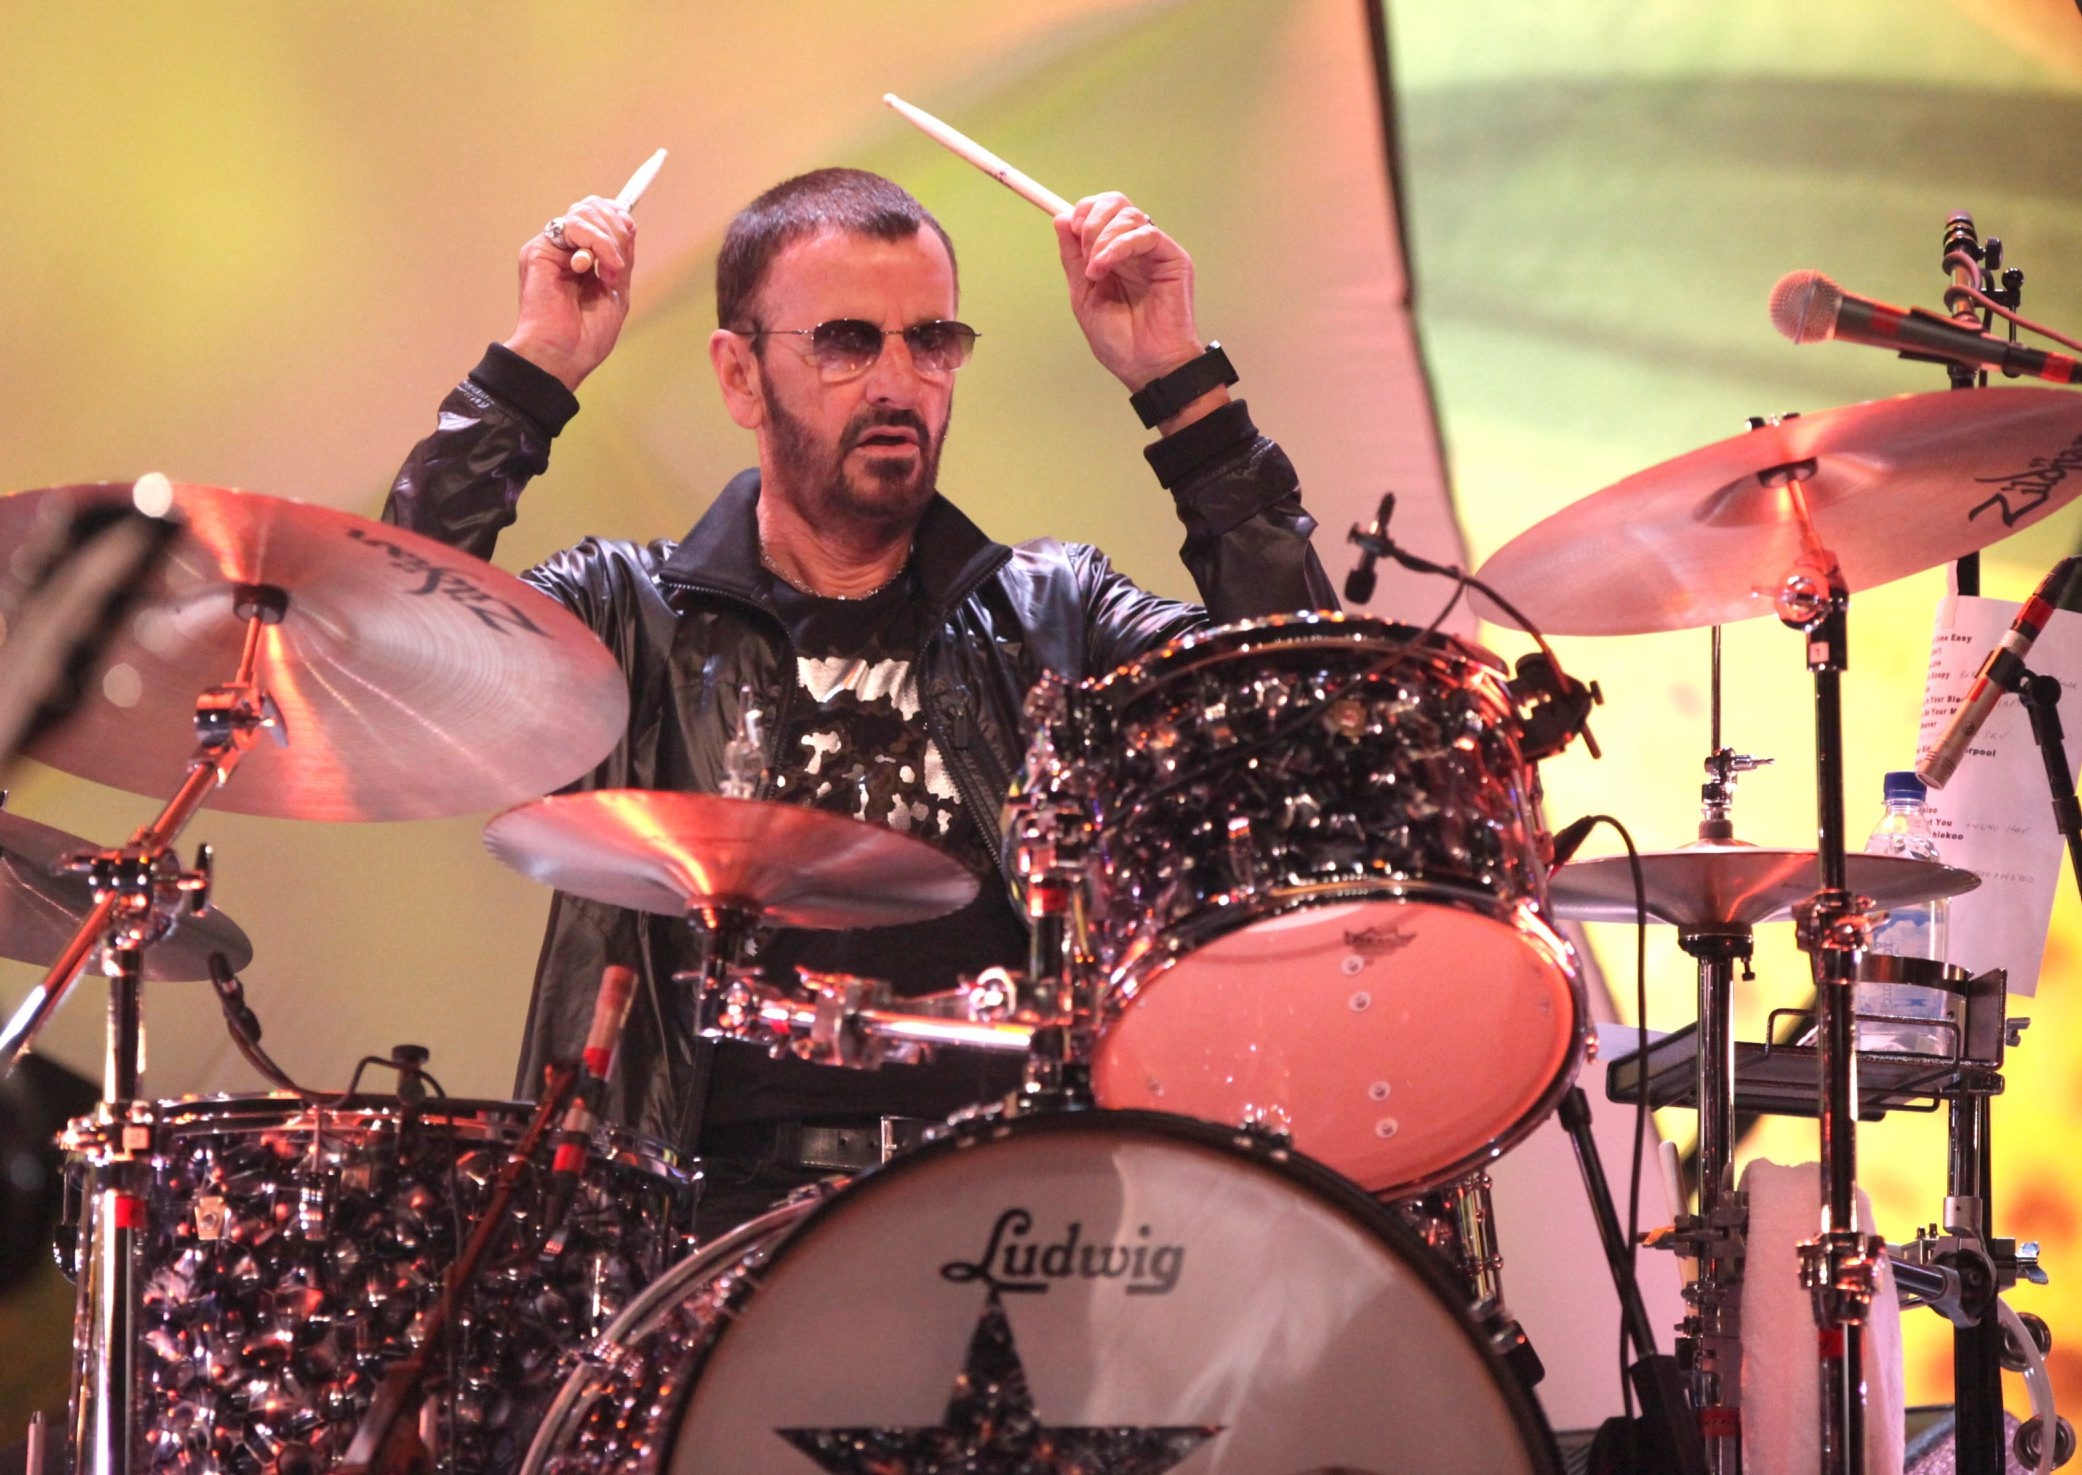 Ringo Starr returns to the area for a show at the Seneca Allegany Resort and Casino in Salamanca. (Photo by Robert Kirkham/Buffalo News file photo)